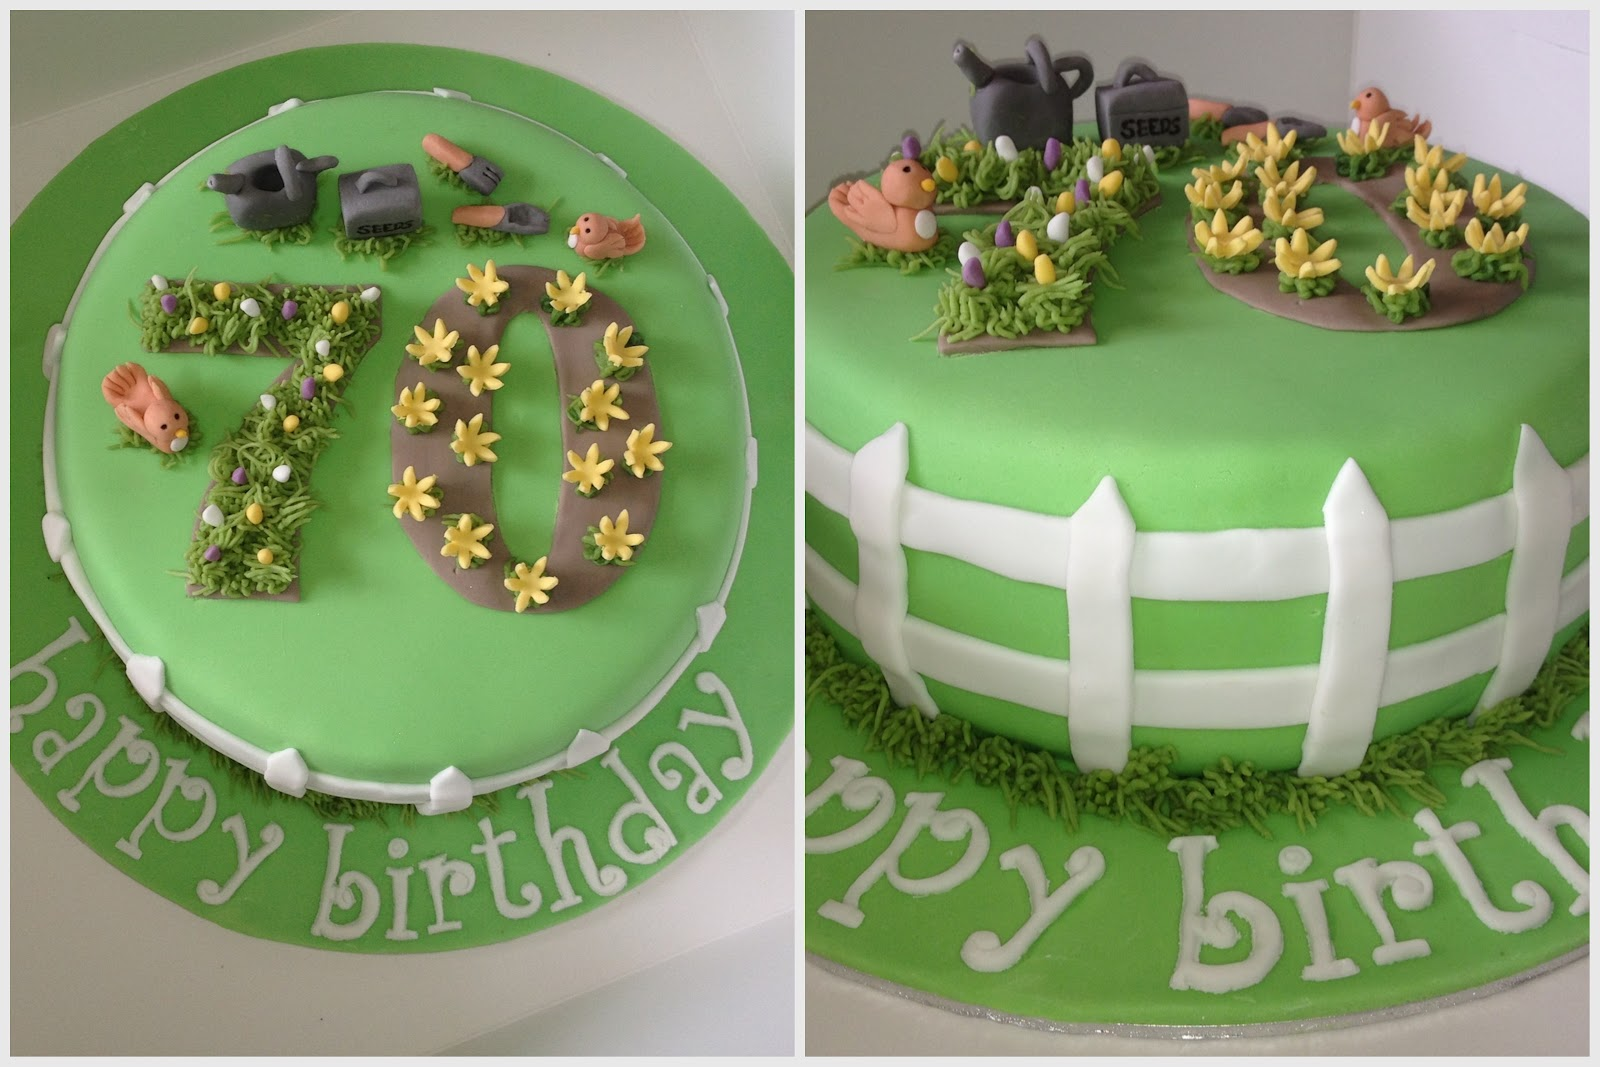 The Bohemian Bakery Gardening Themed Cake